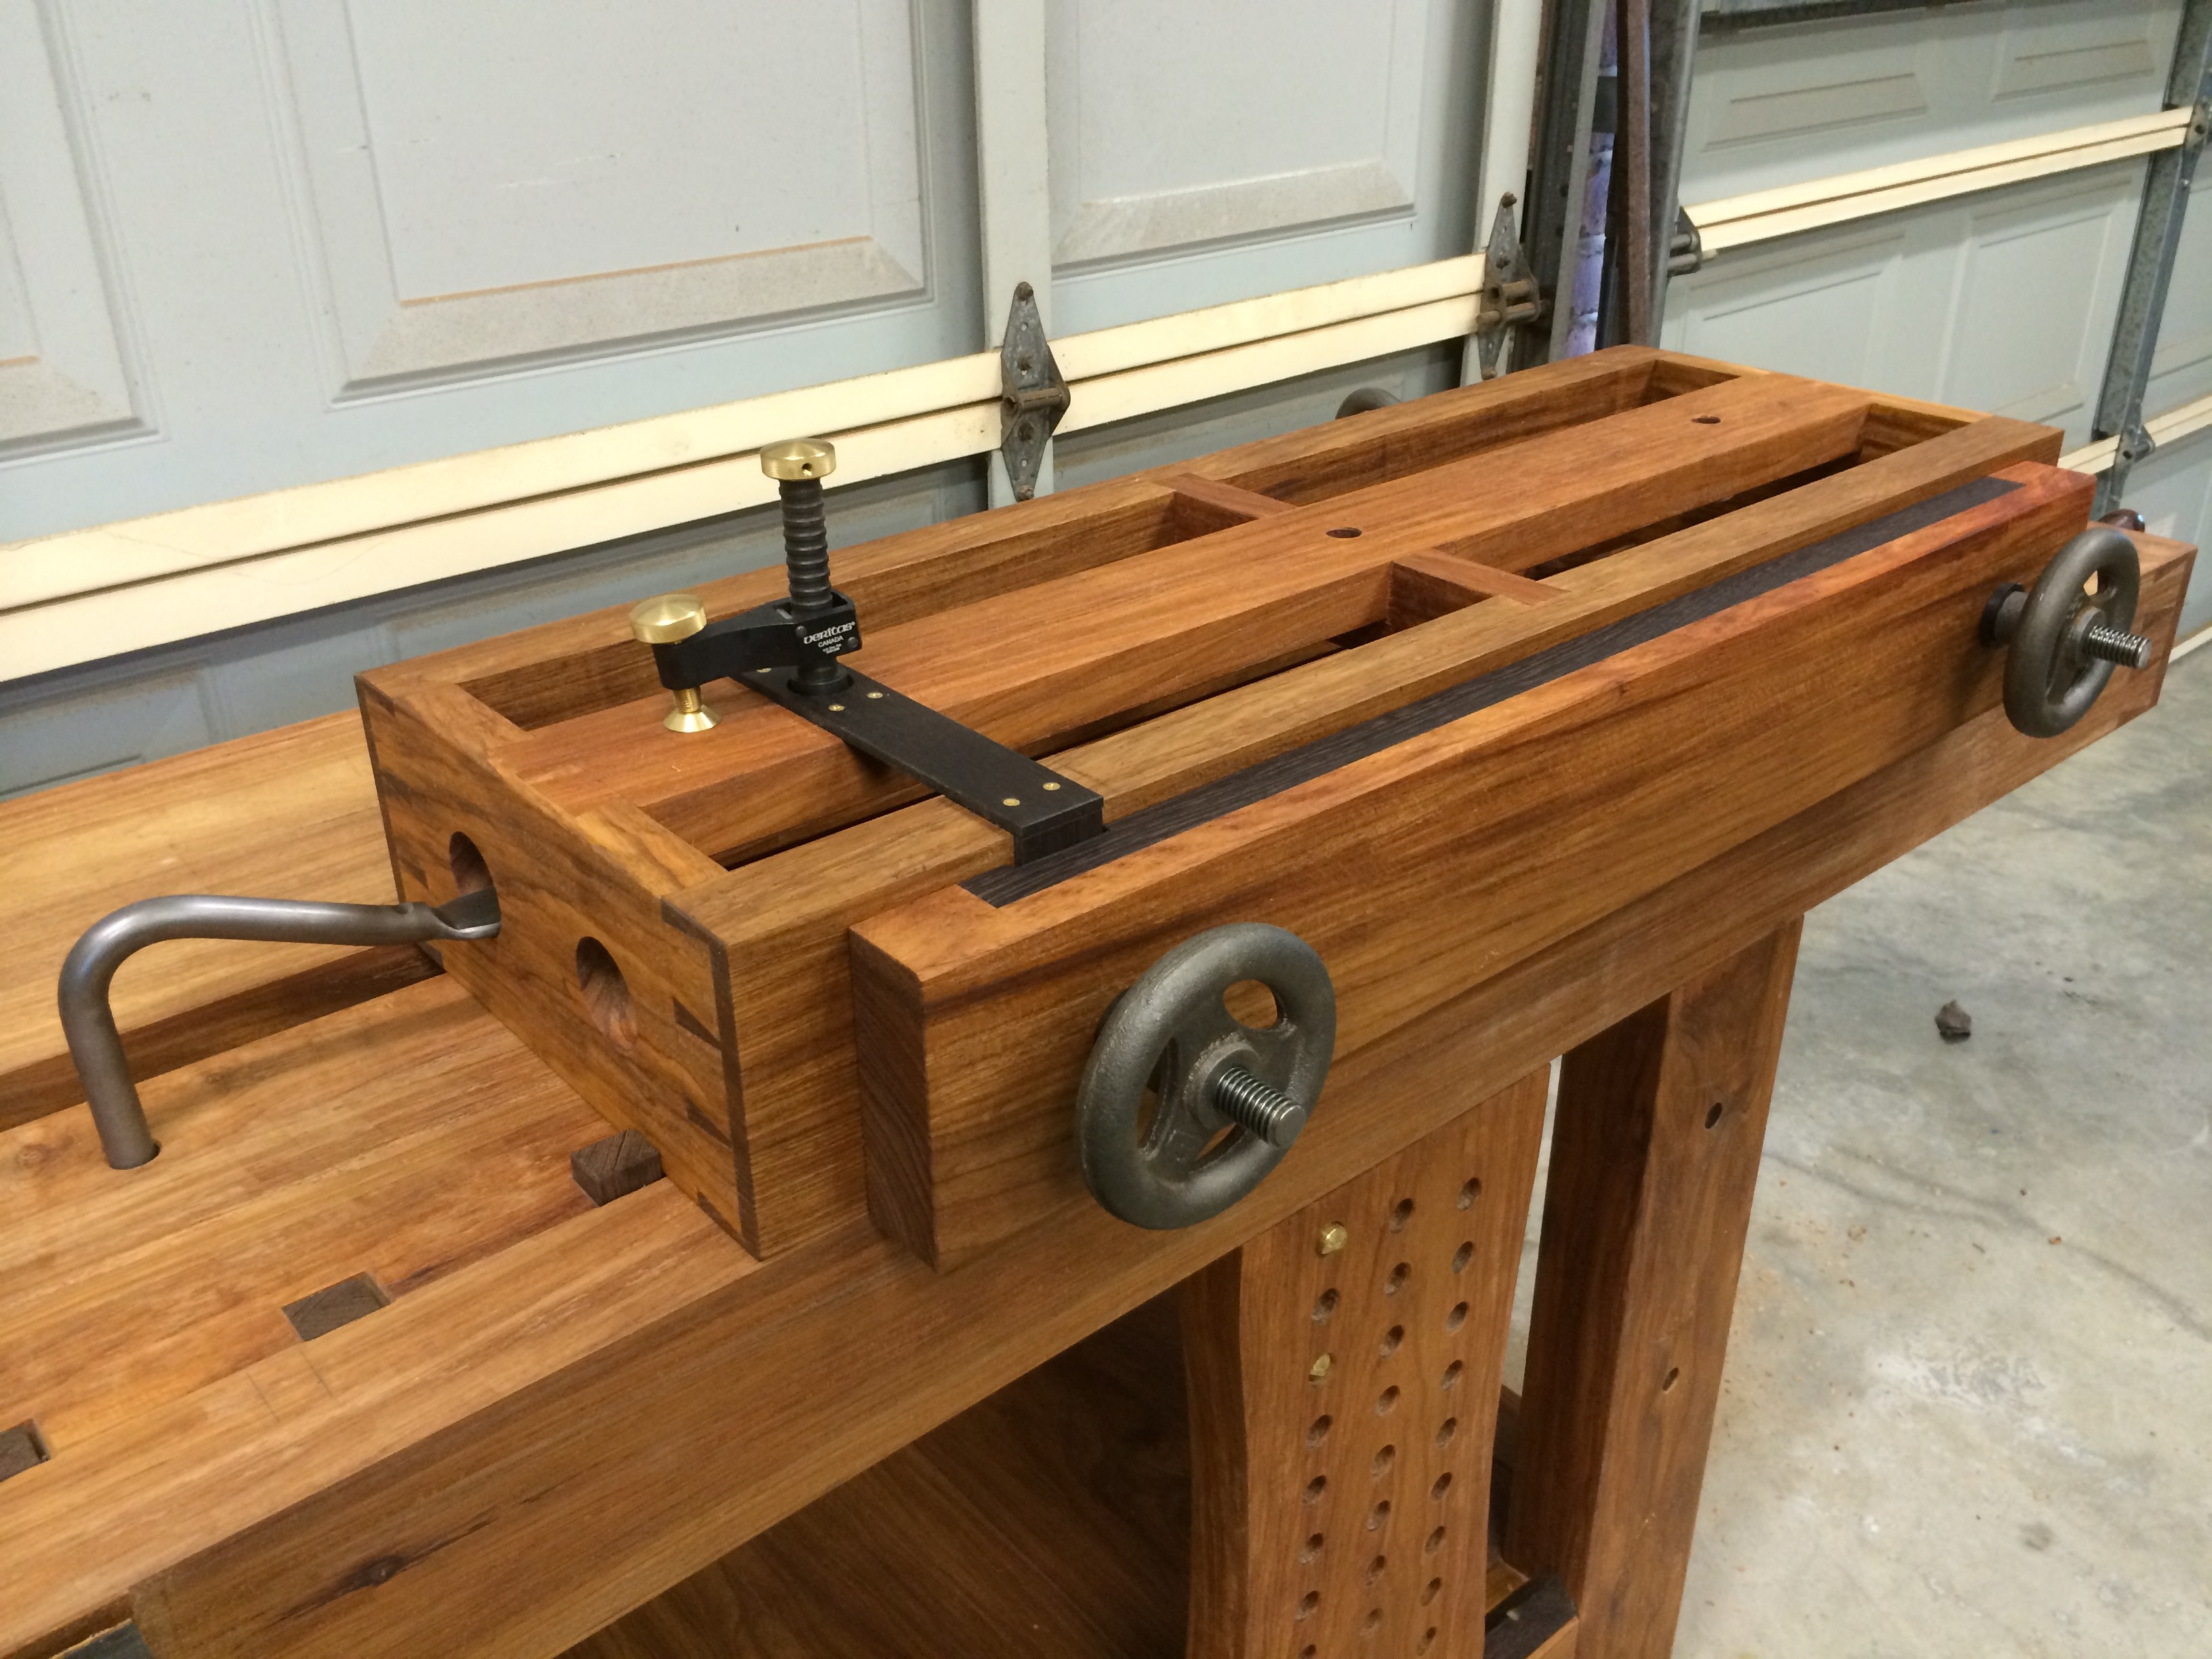 vise jay jackman vice woodworking bench clamp bates workbench wood pallet installation woodshop works pipe